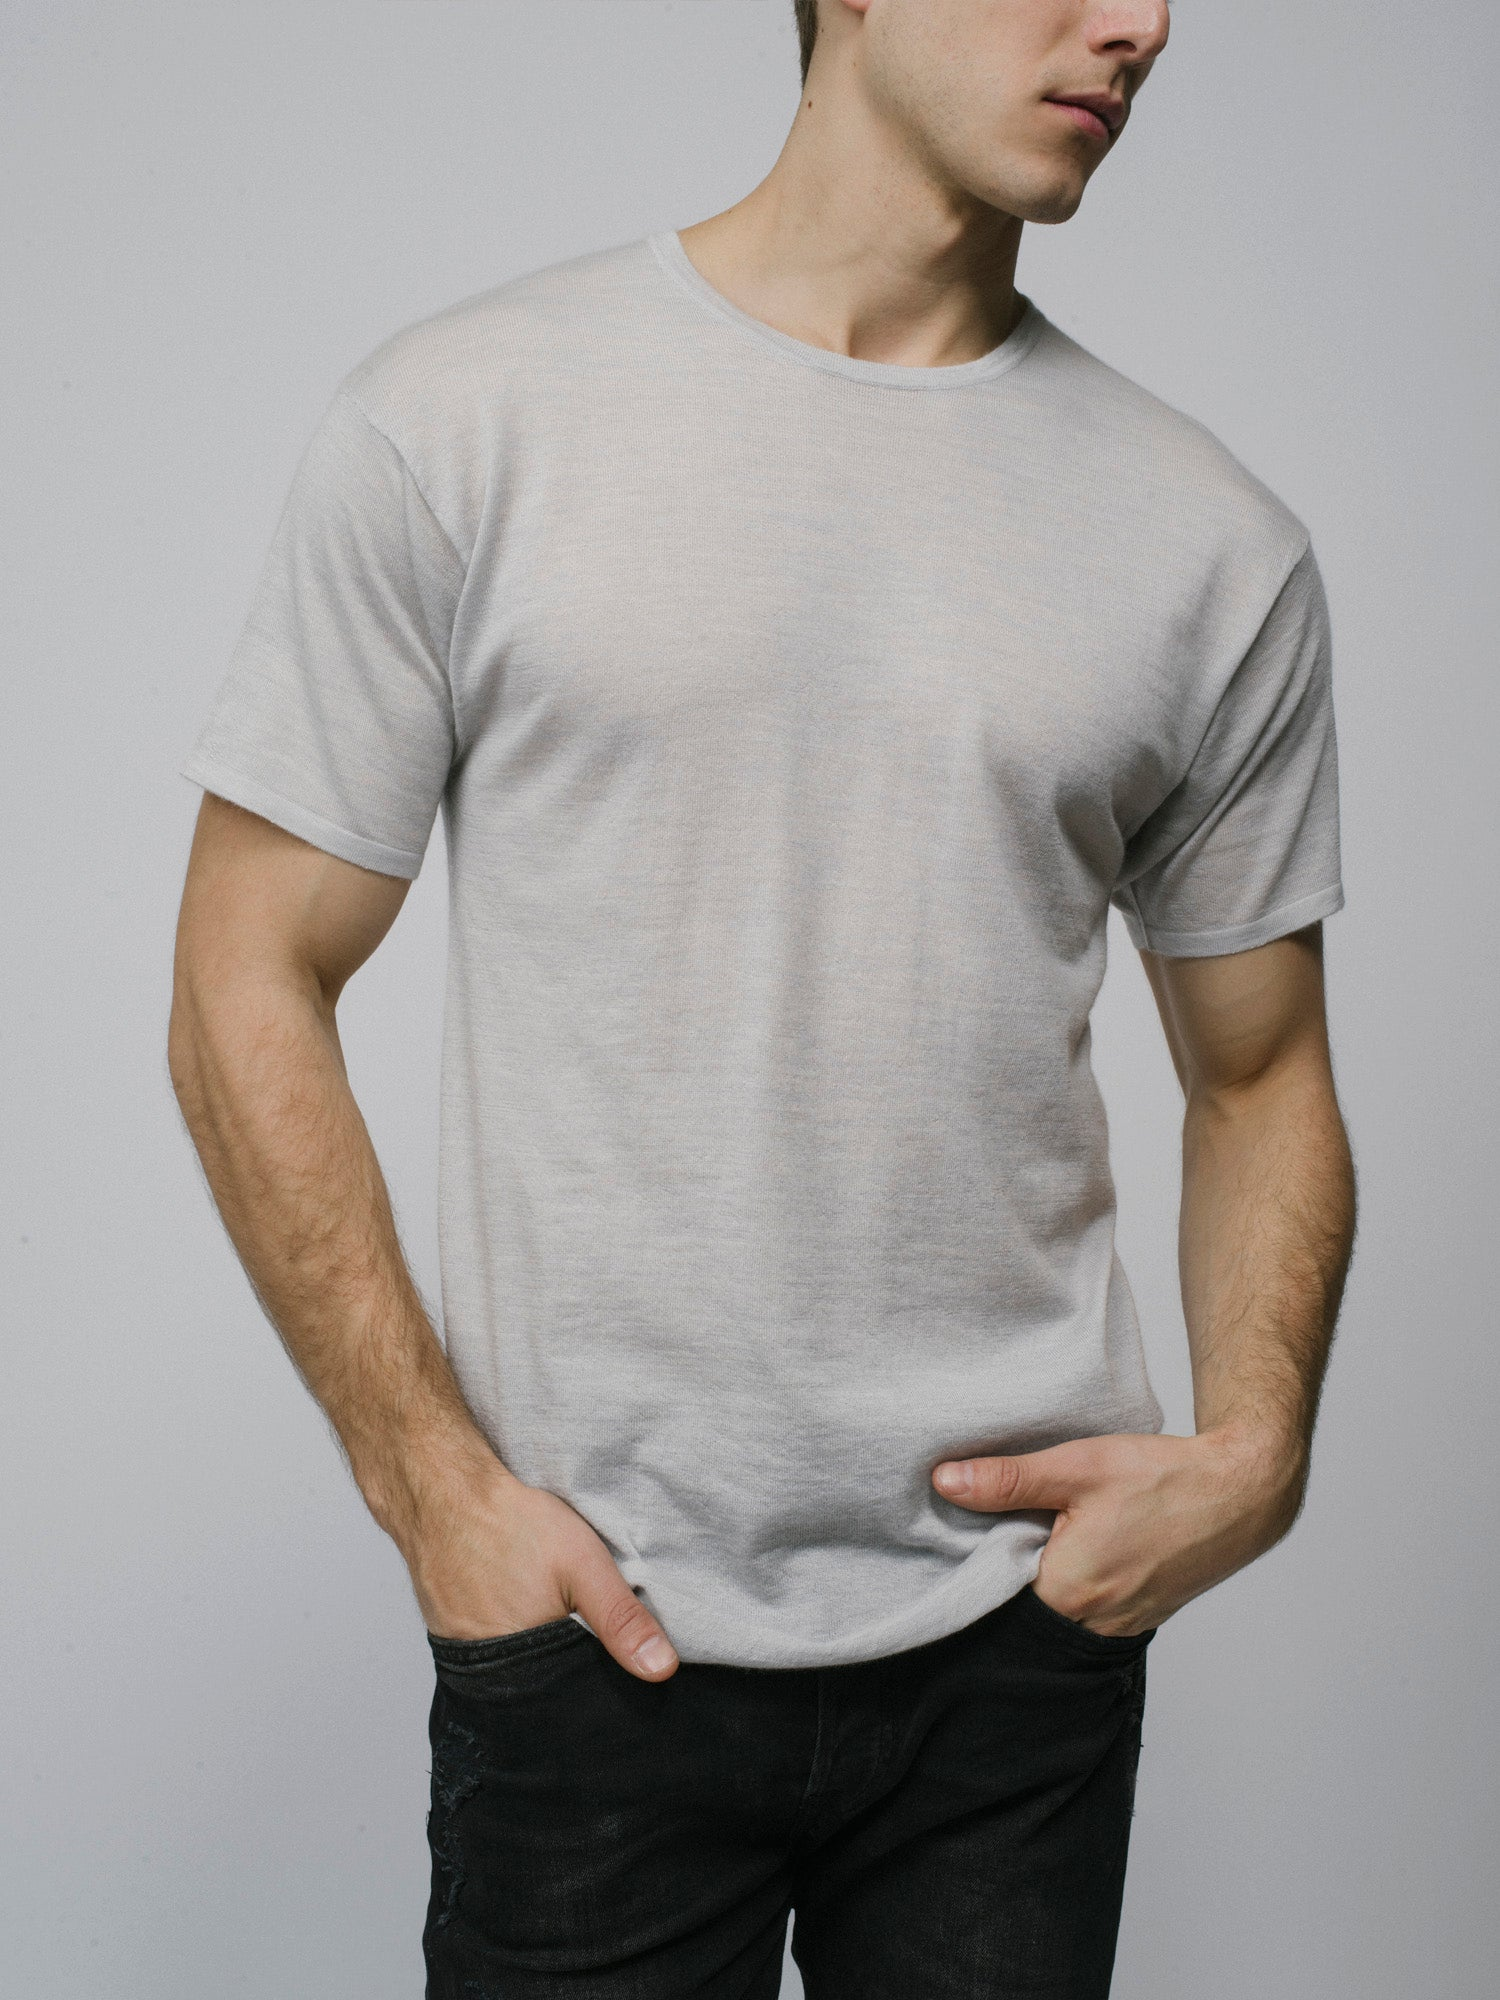 100% Cashmere T-Shirt - Men's Grey